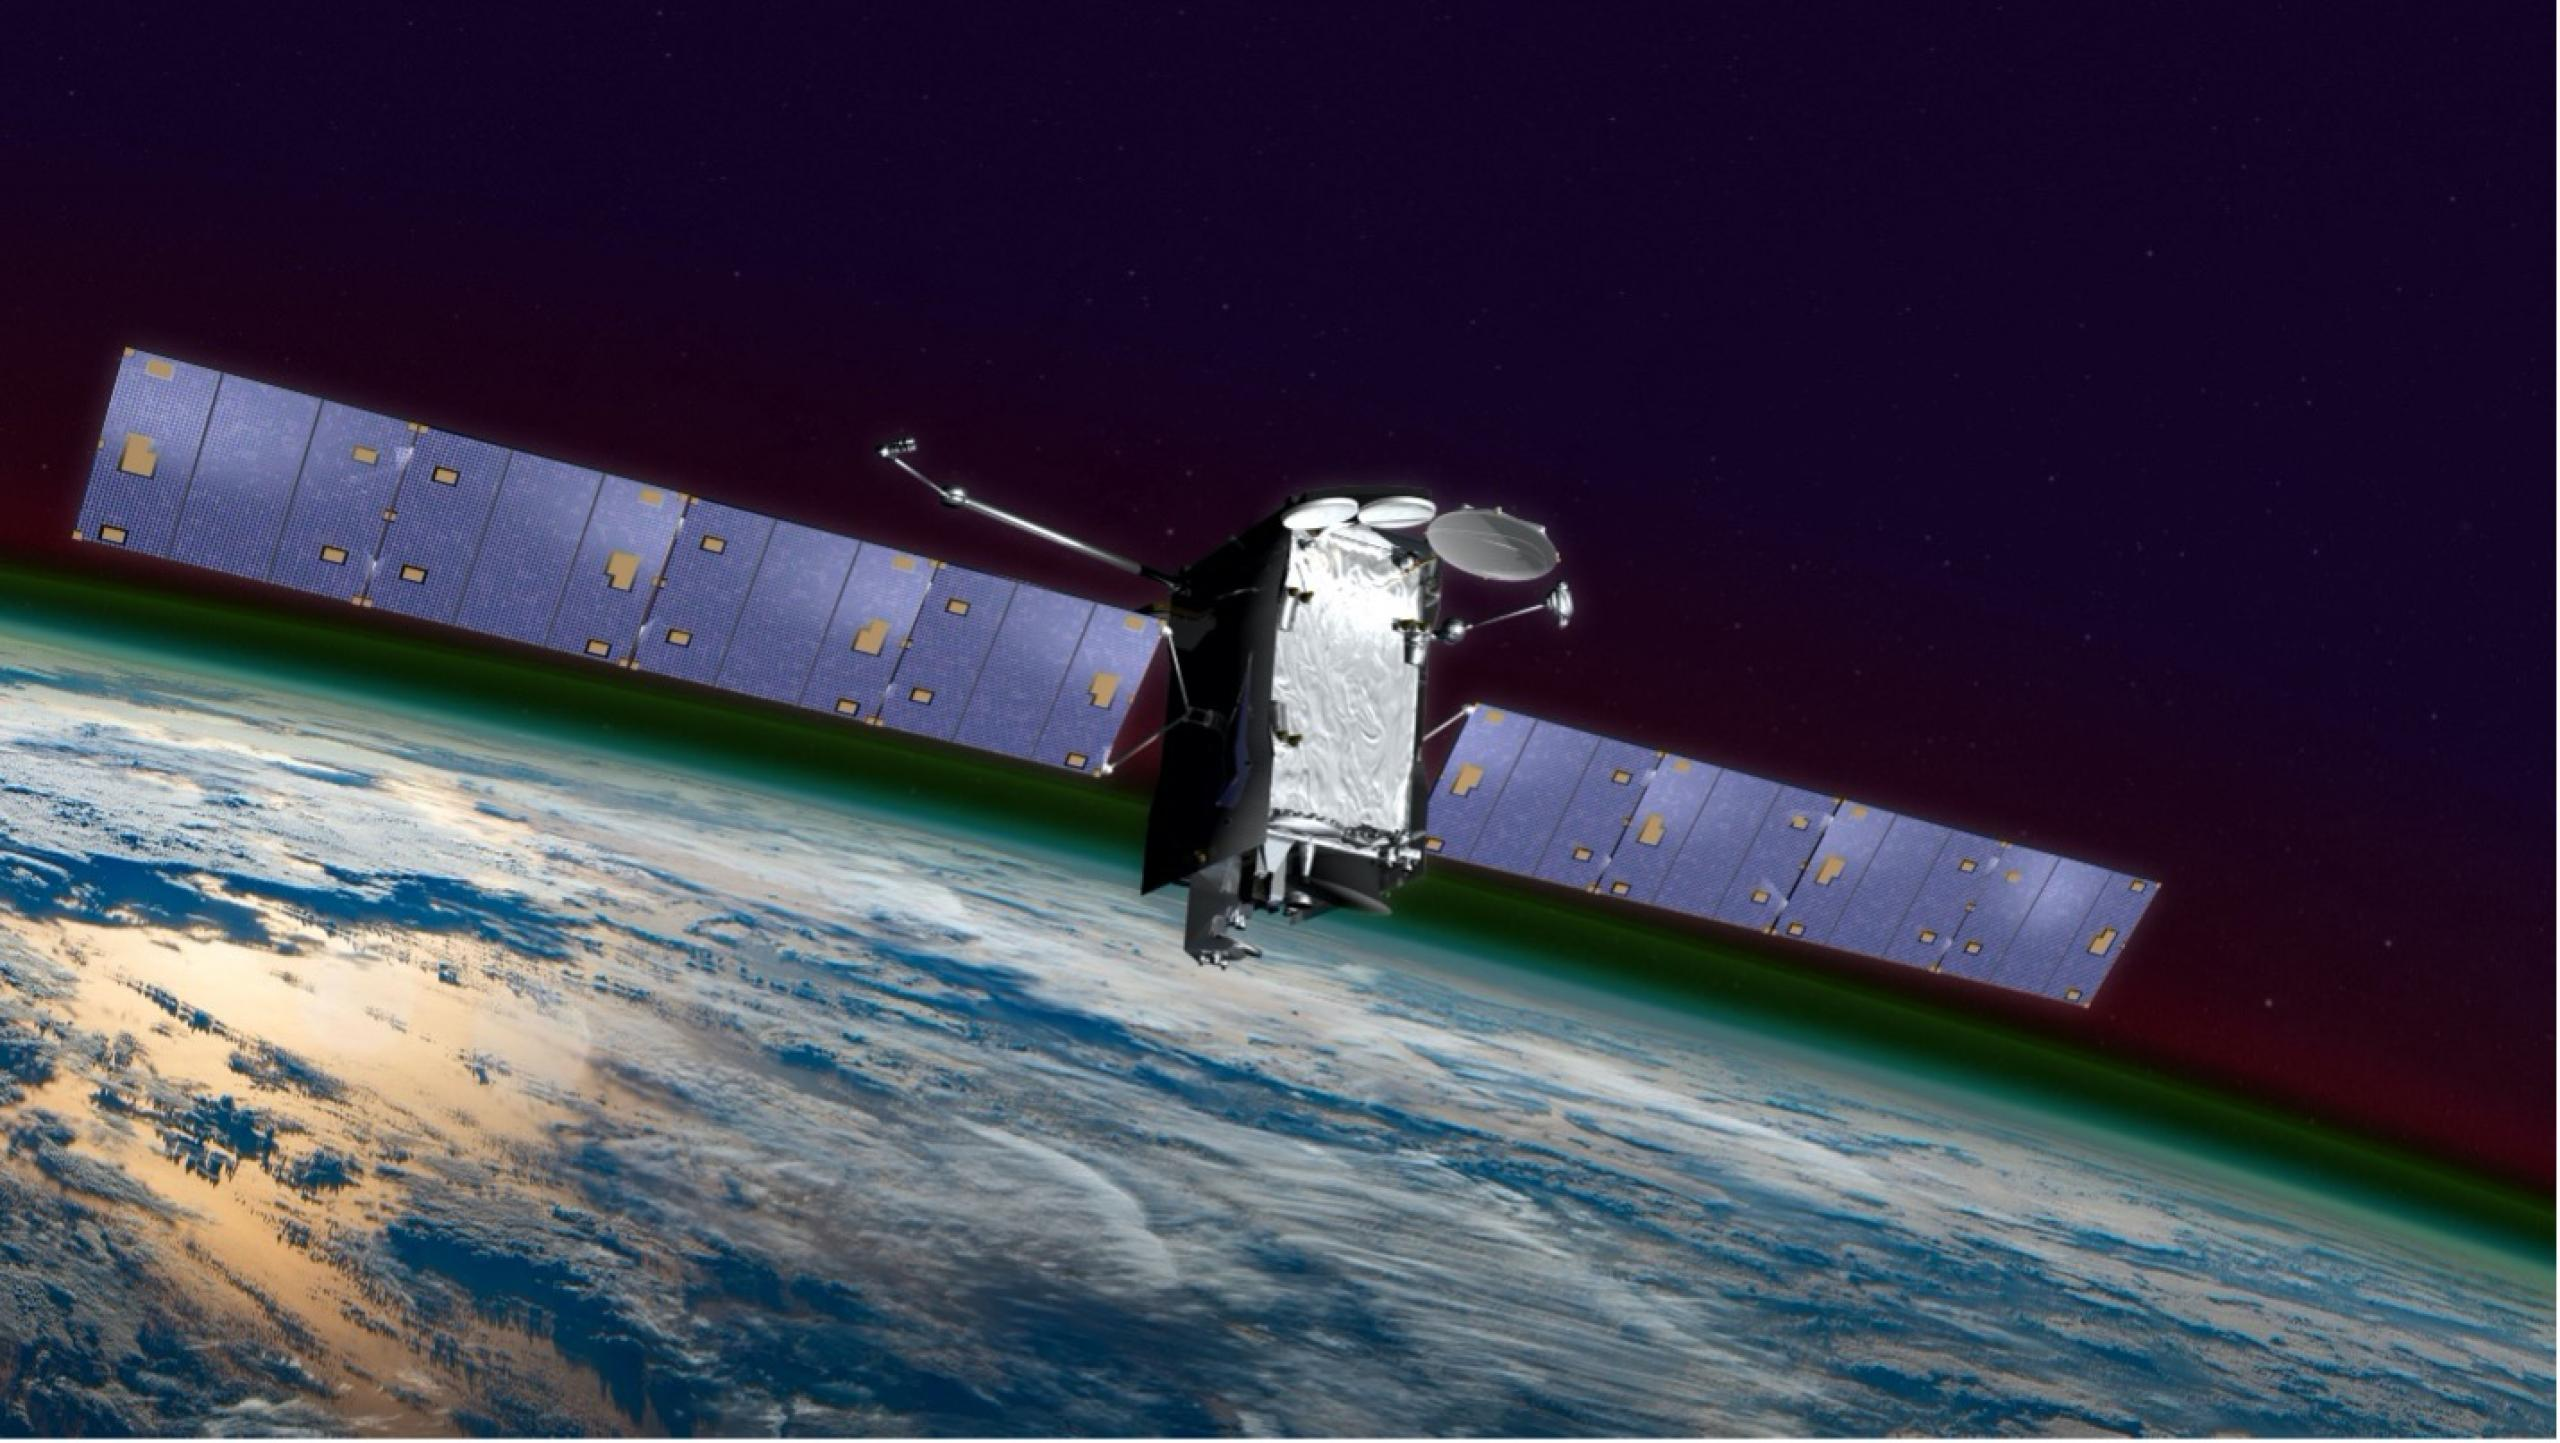 Artist concept of satellite in orbit above the Earth